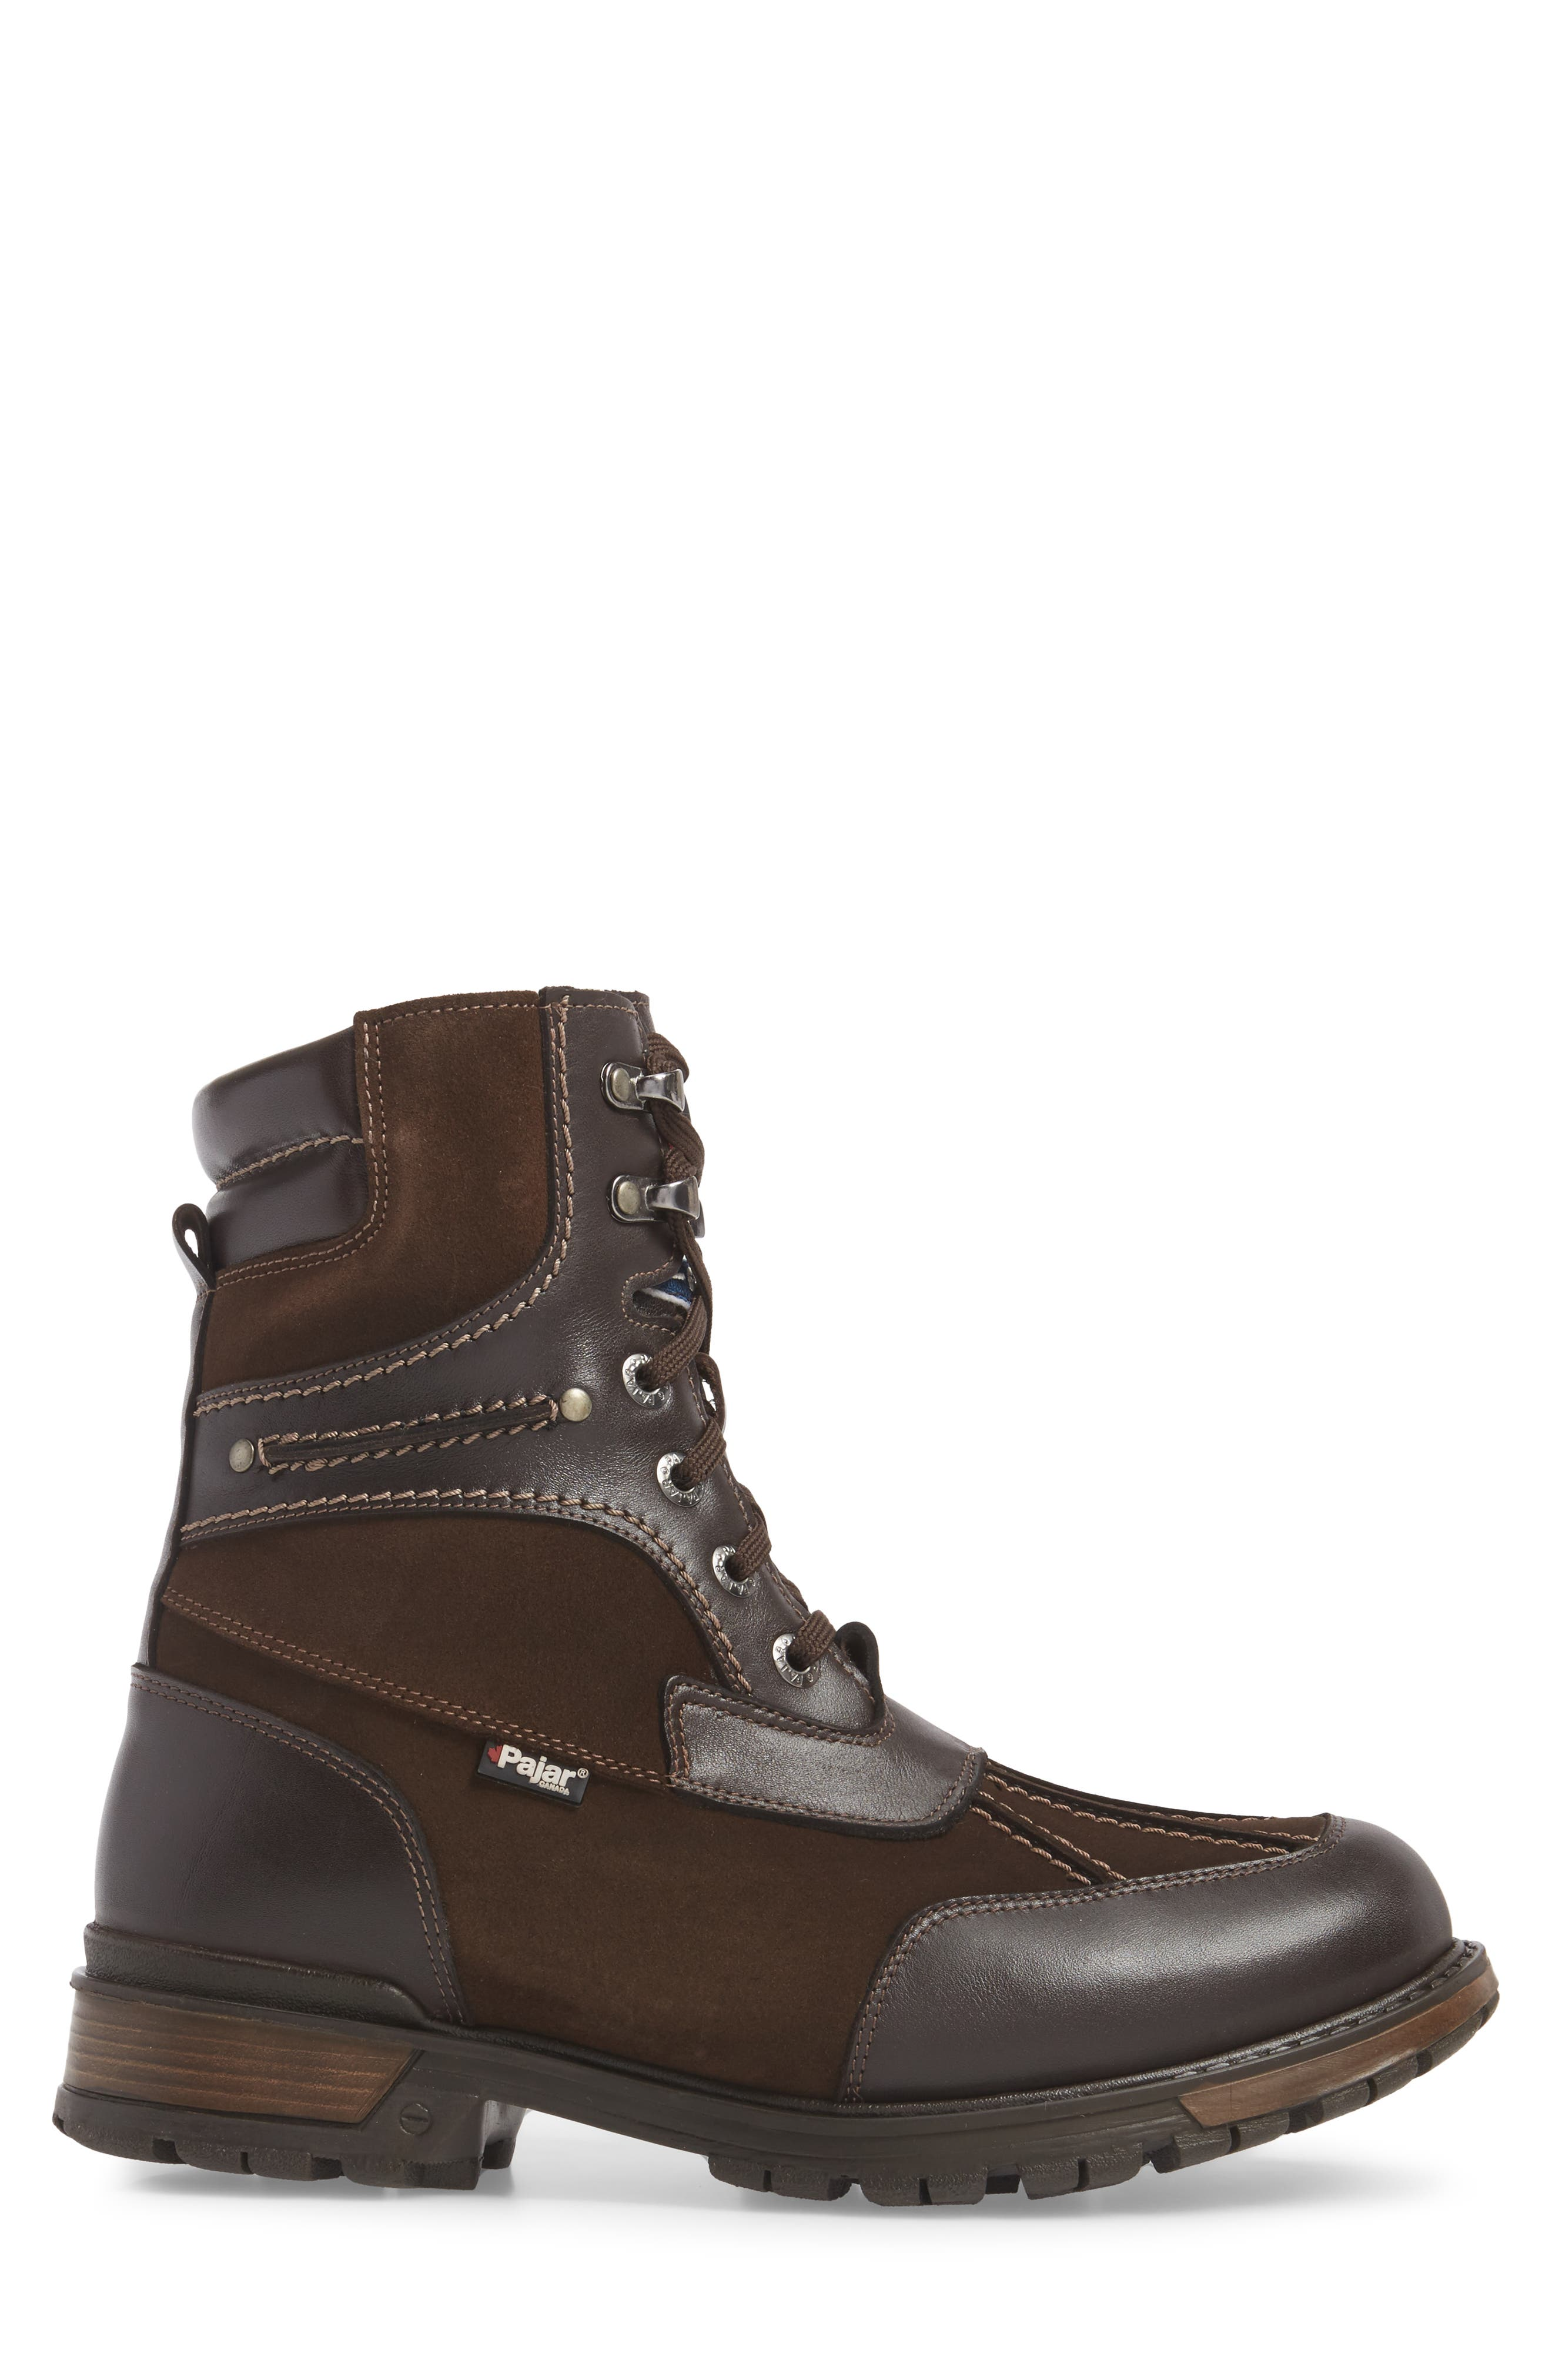 'Carrefour' Snow Boot,                             Alternate thumbnail 3, color,                             Dark Brown Leather